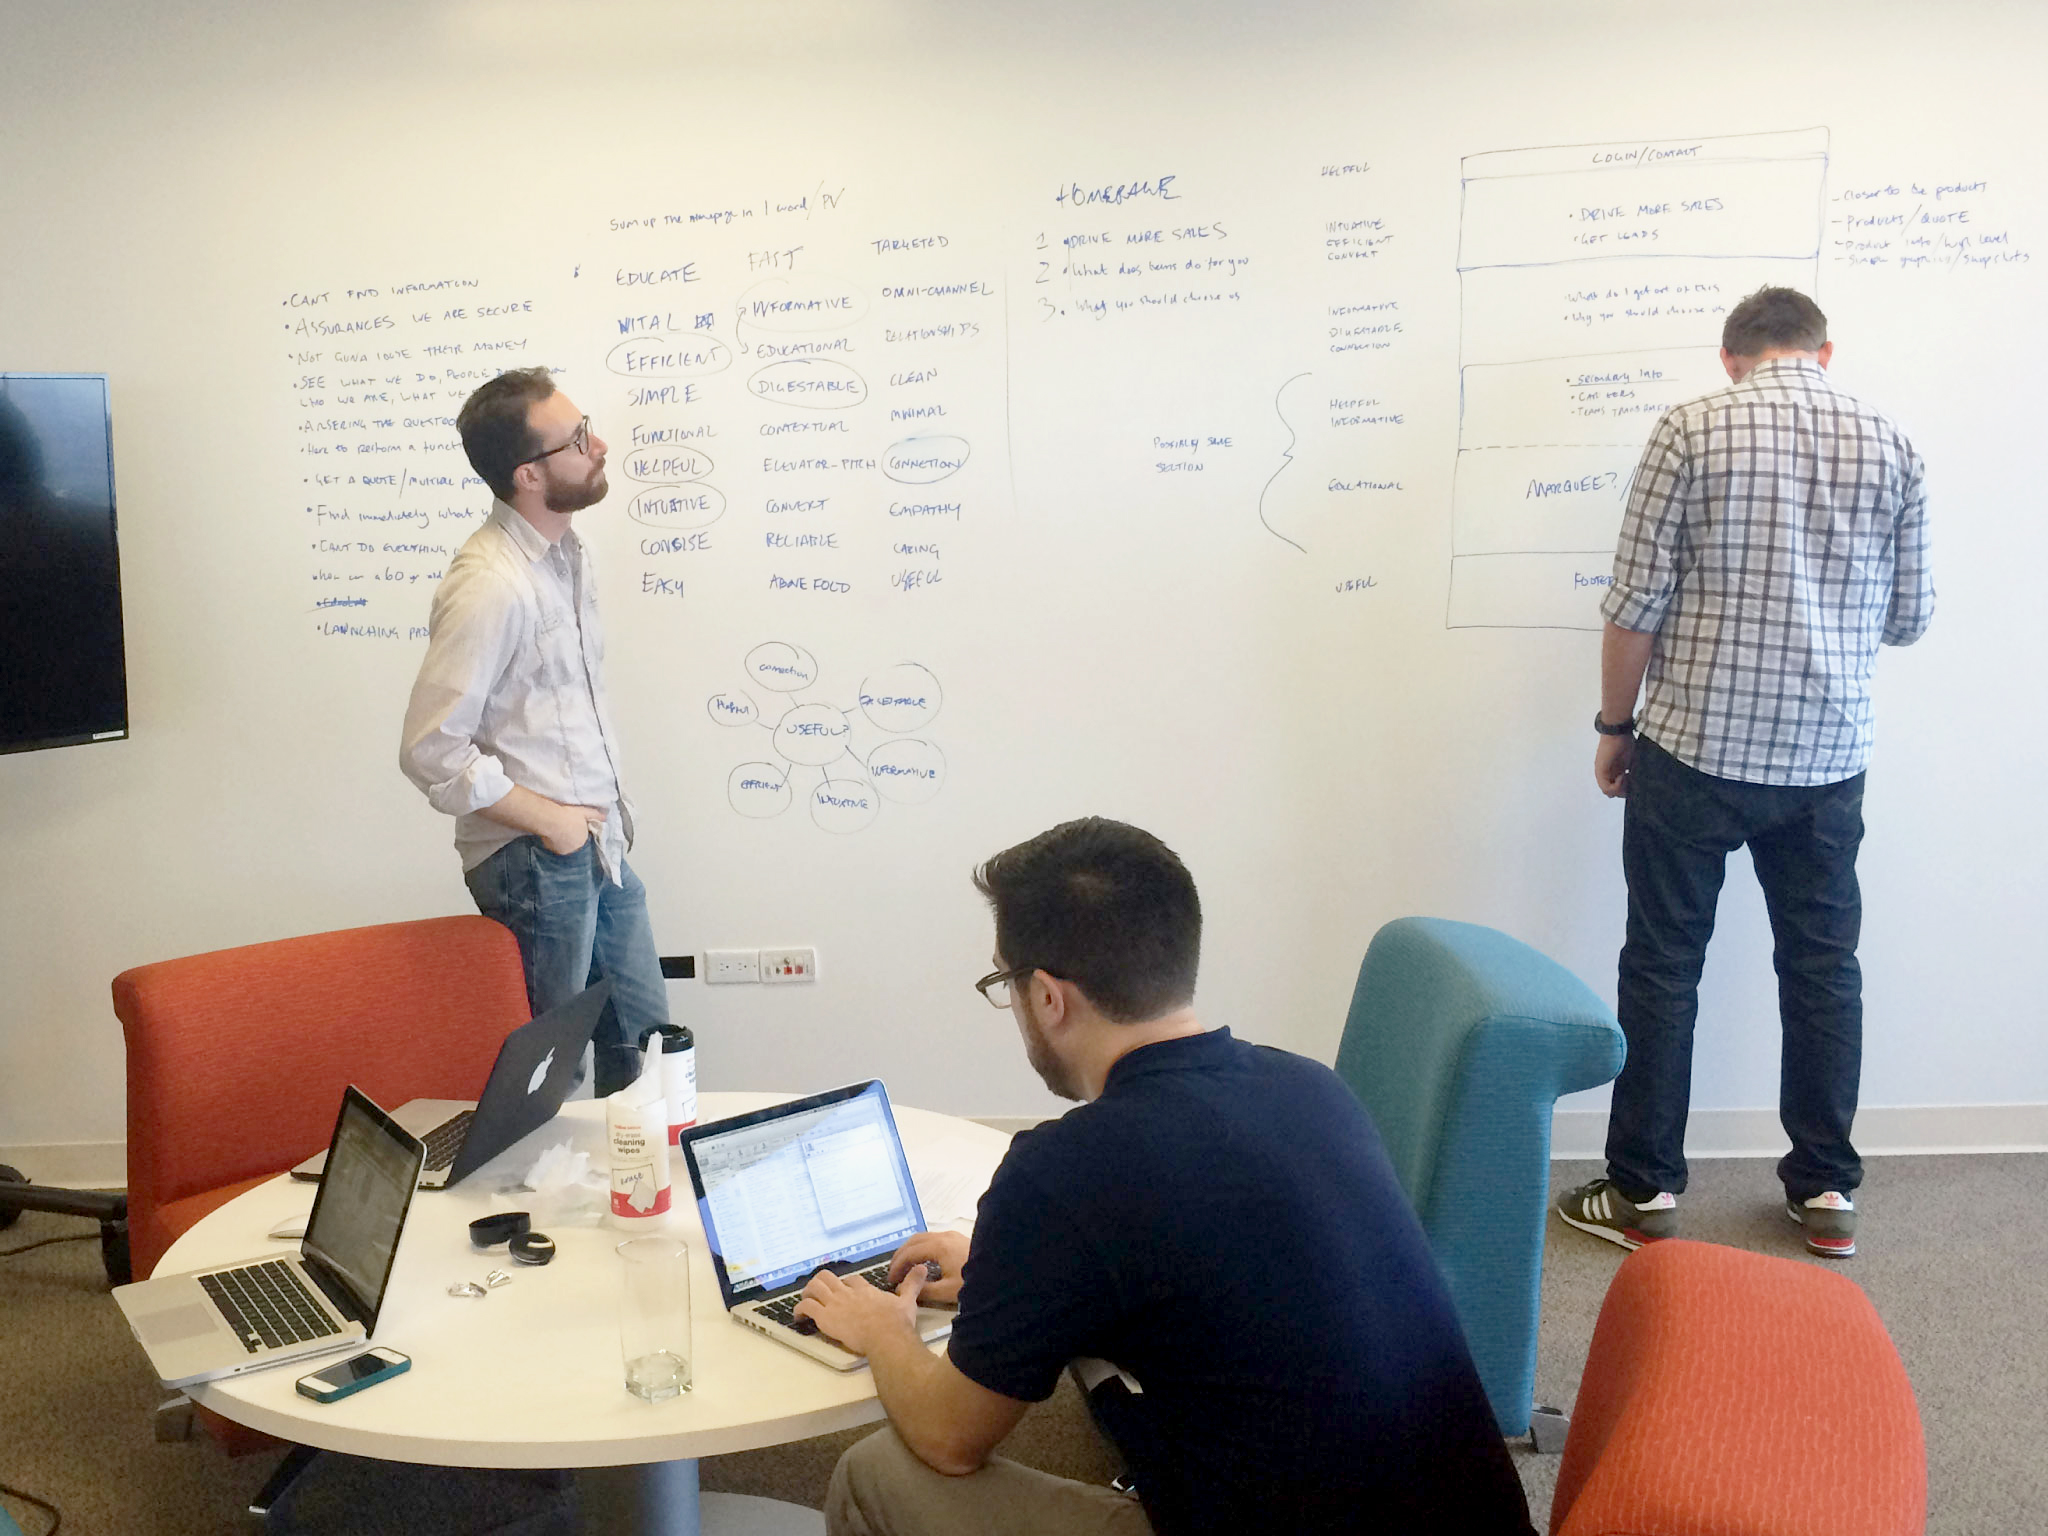 Working along side Content Strategy and Analytics Experts to map out  design models and solutions